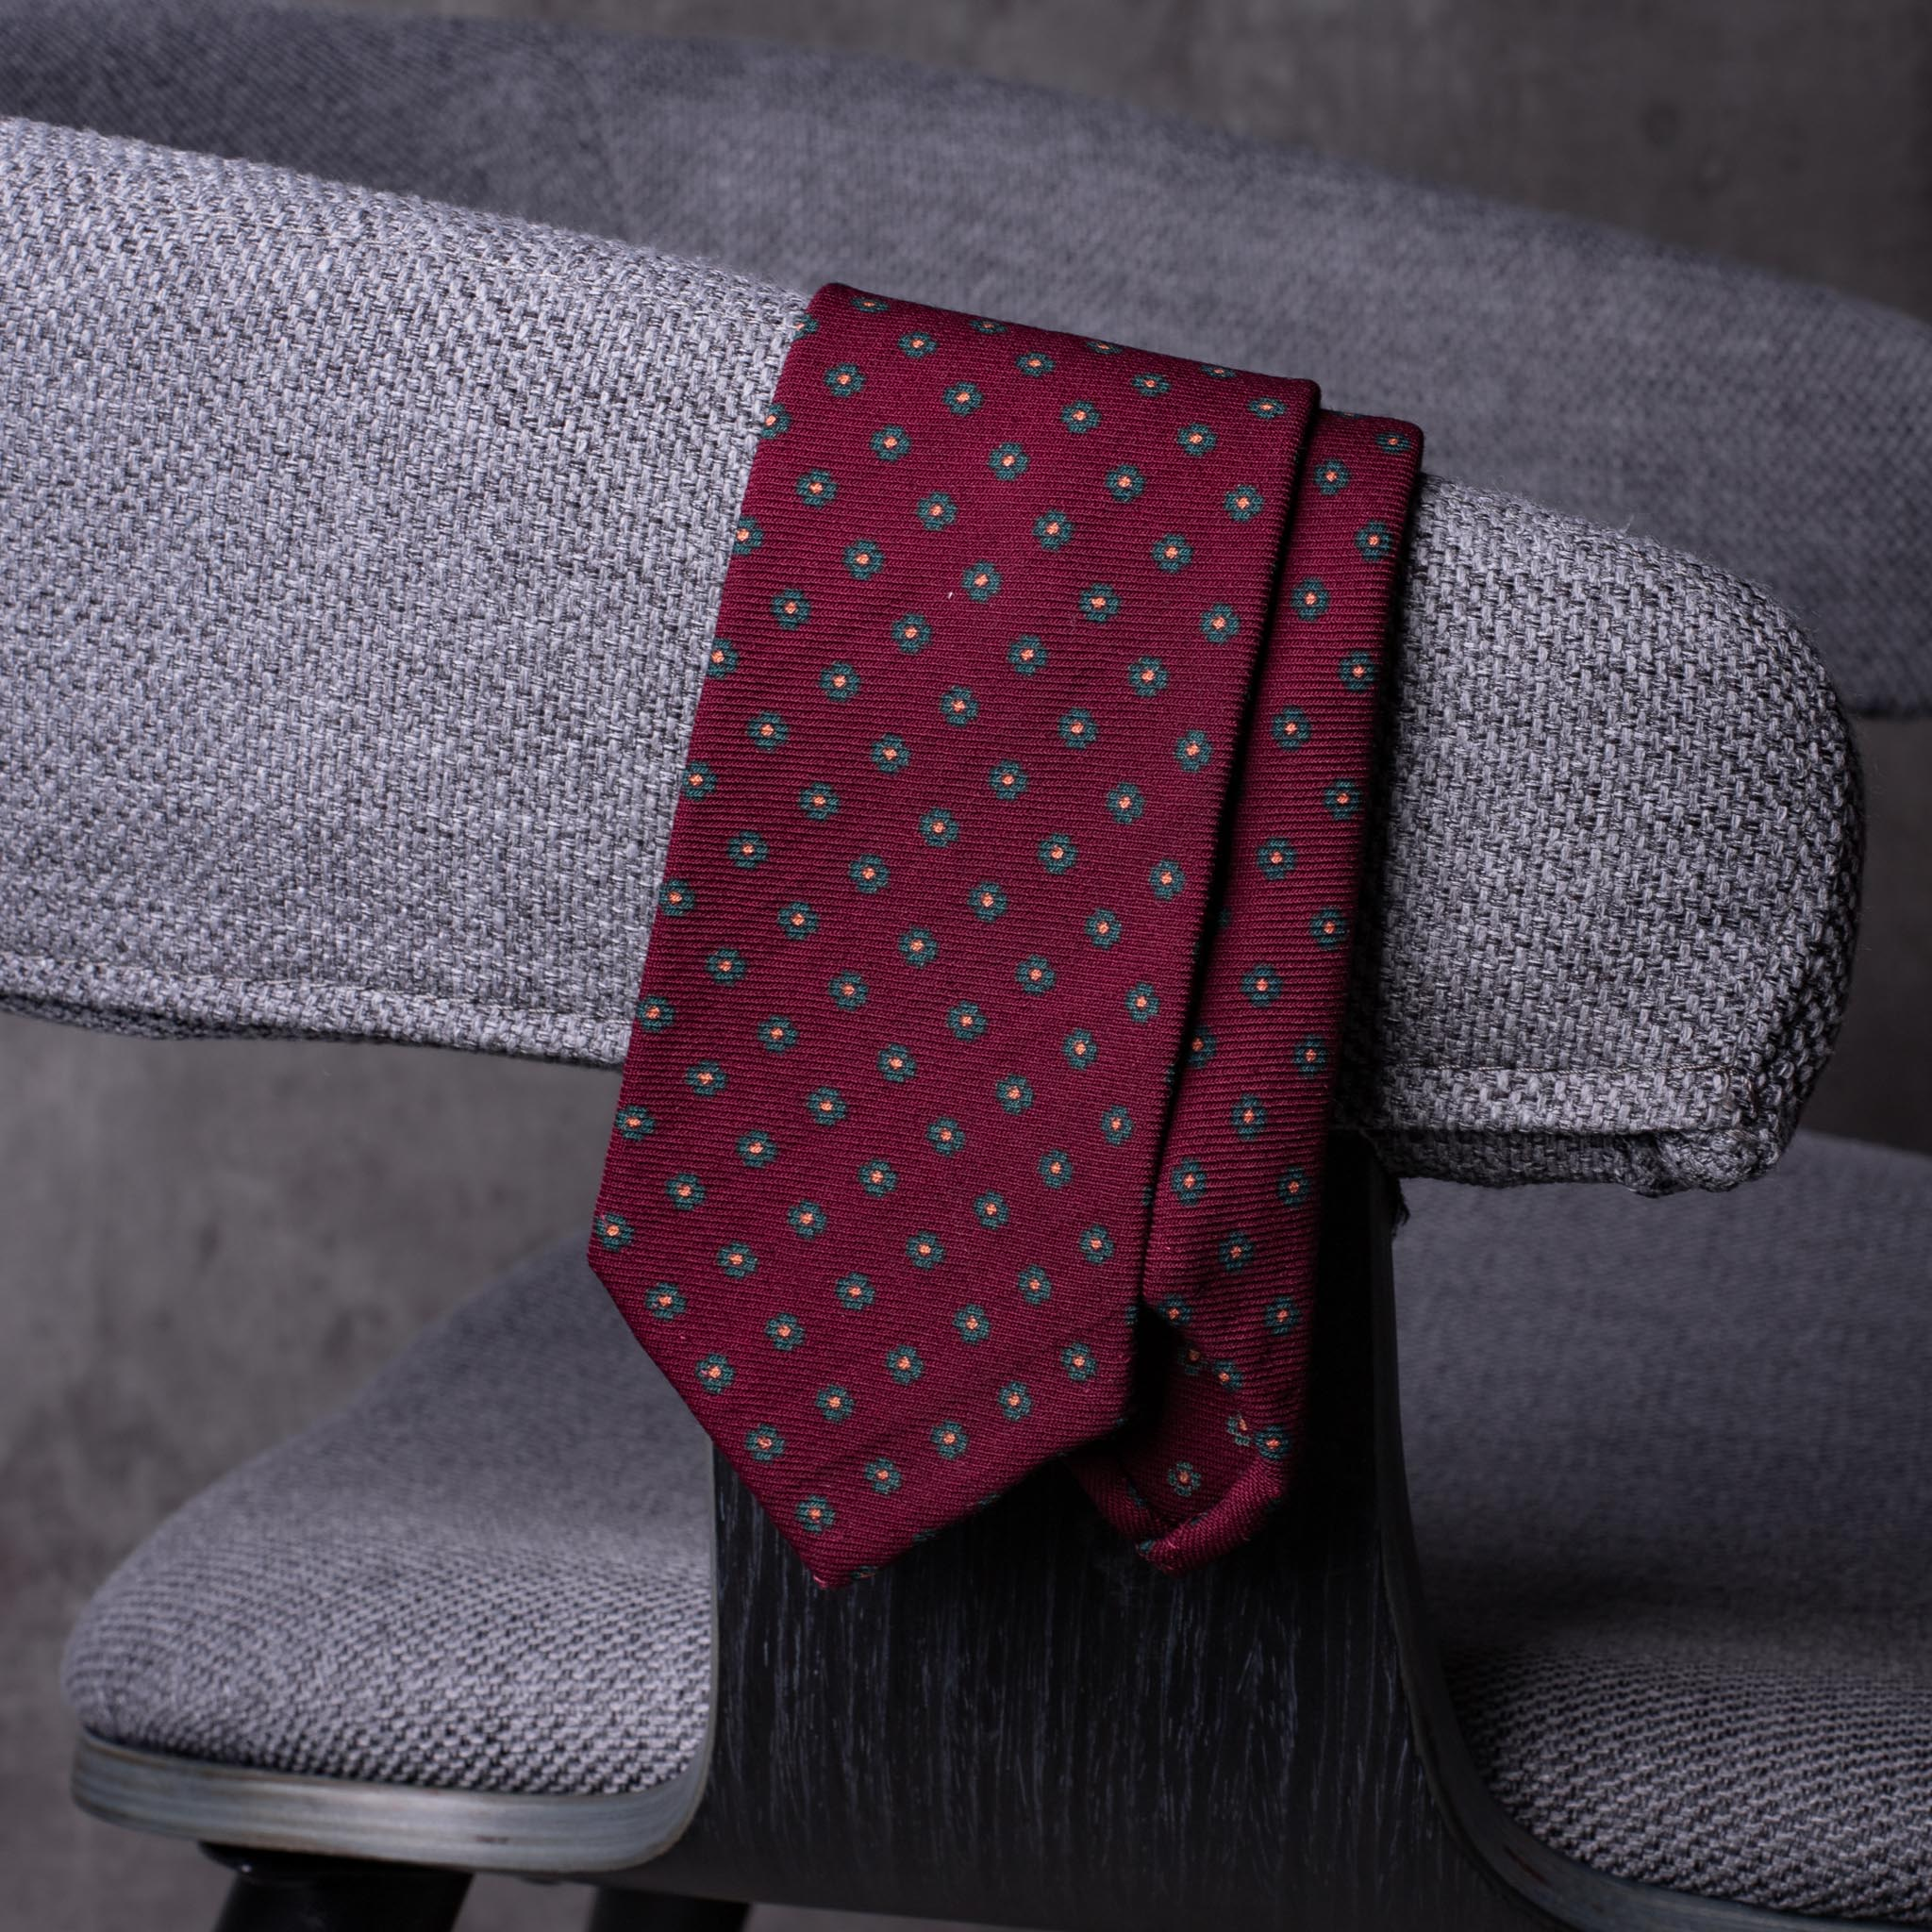 WOOL-0447-Tie-Initials-Corbata-Iniciales-The-Seelk-3